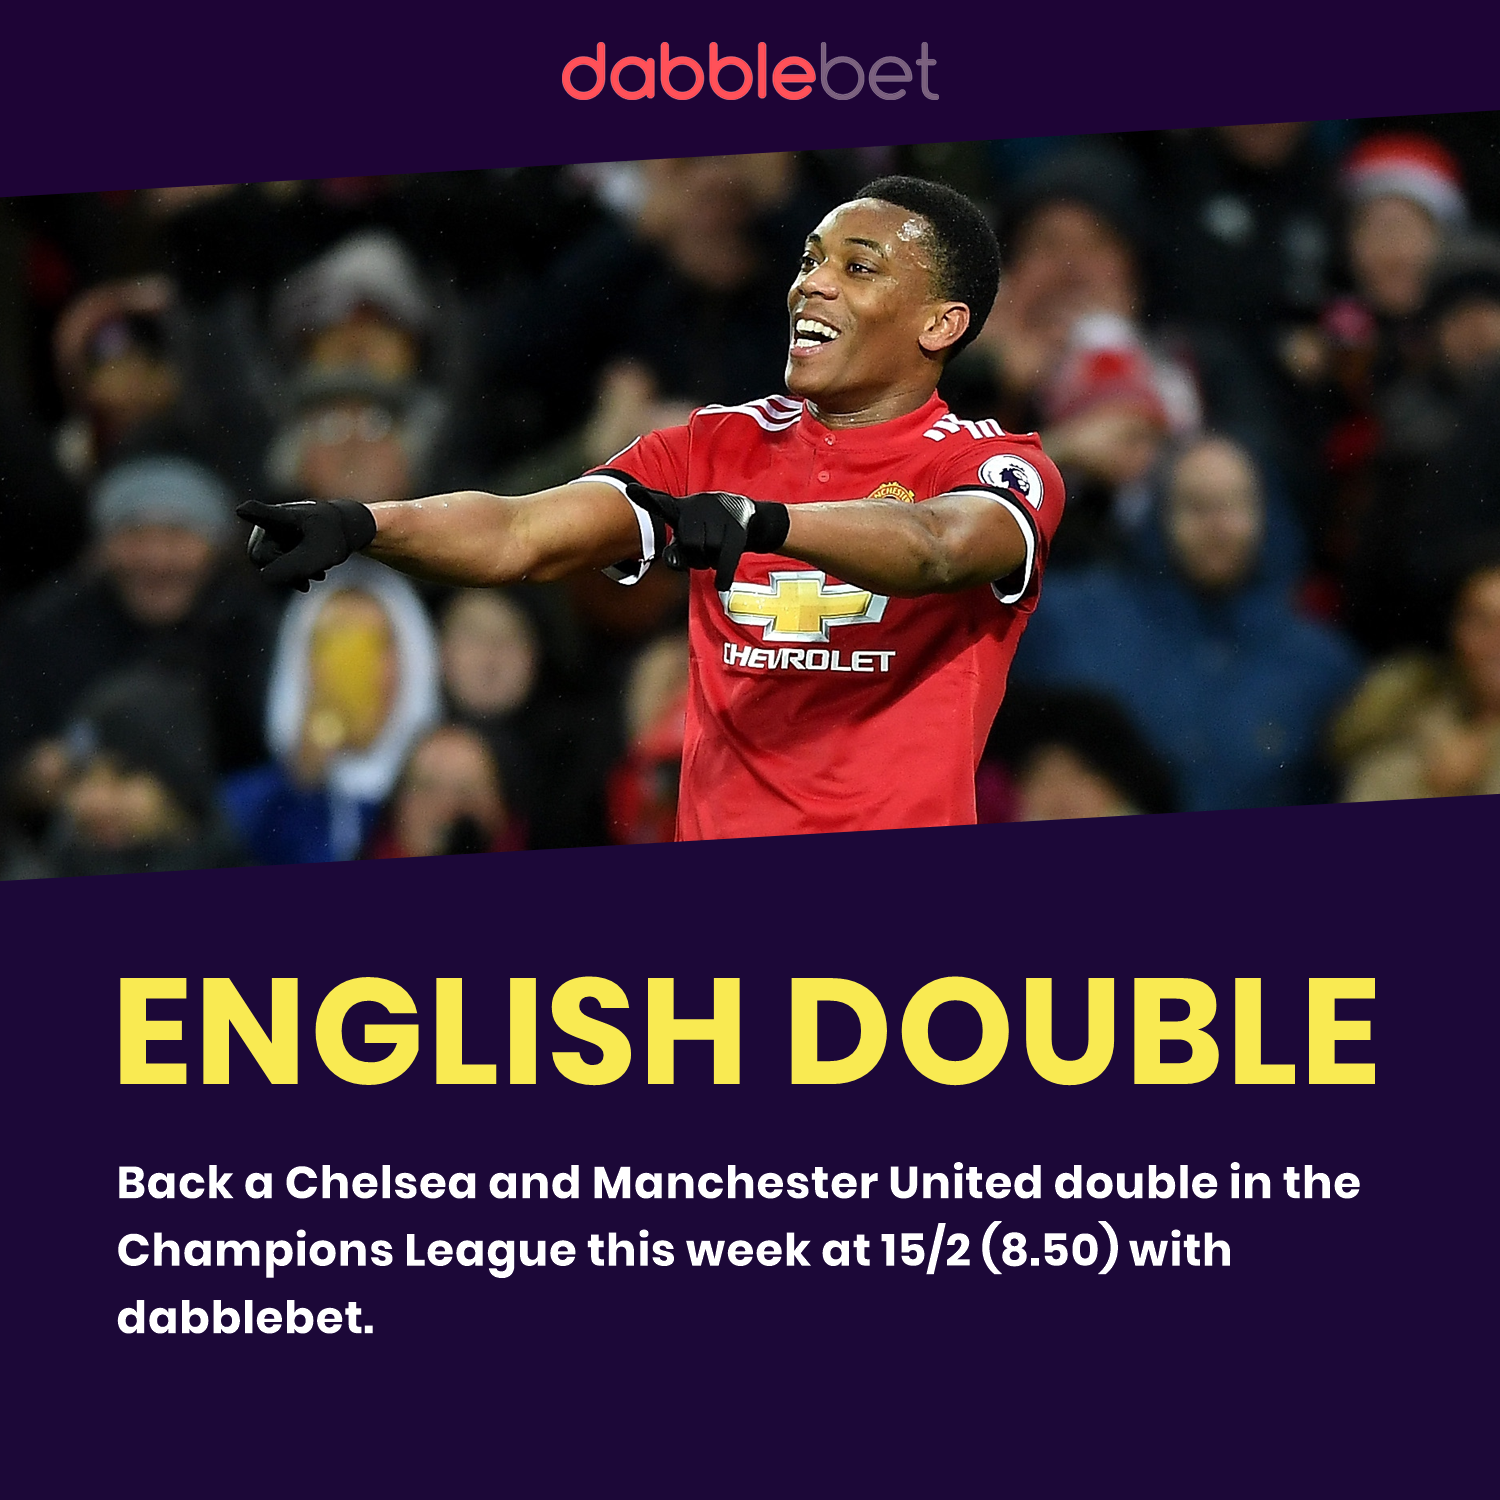 Man United Chelsea double graphic